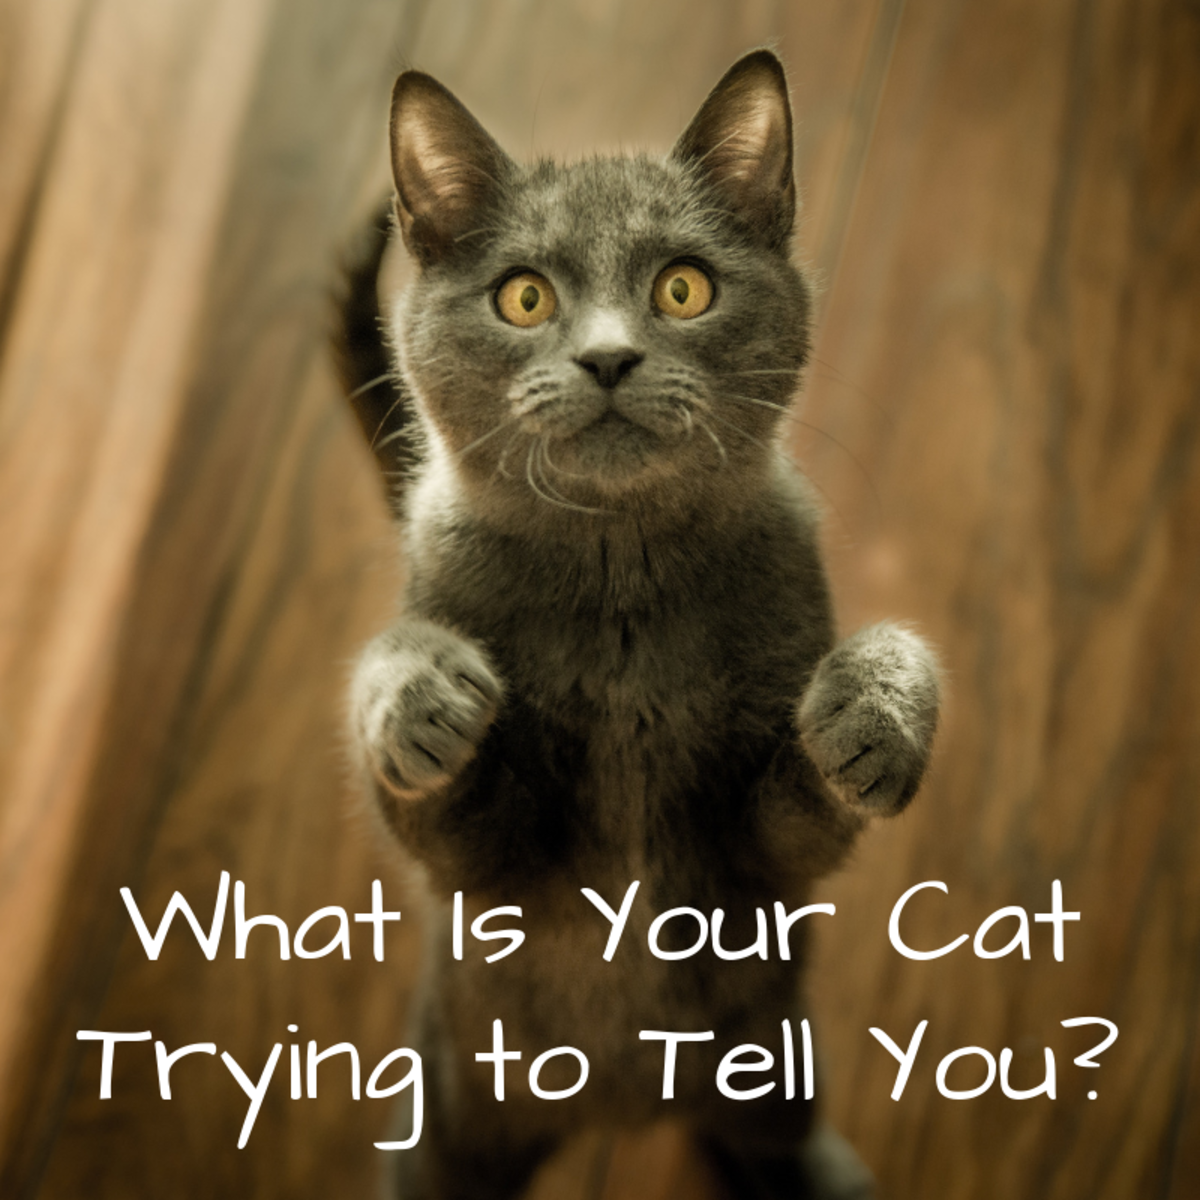 If you've ever wondered what your cat might be trying to communicate to you with their behaviors, body language, and sounds, then this article will help you find some answers.